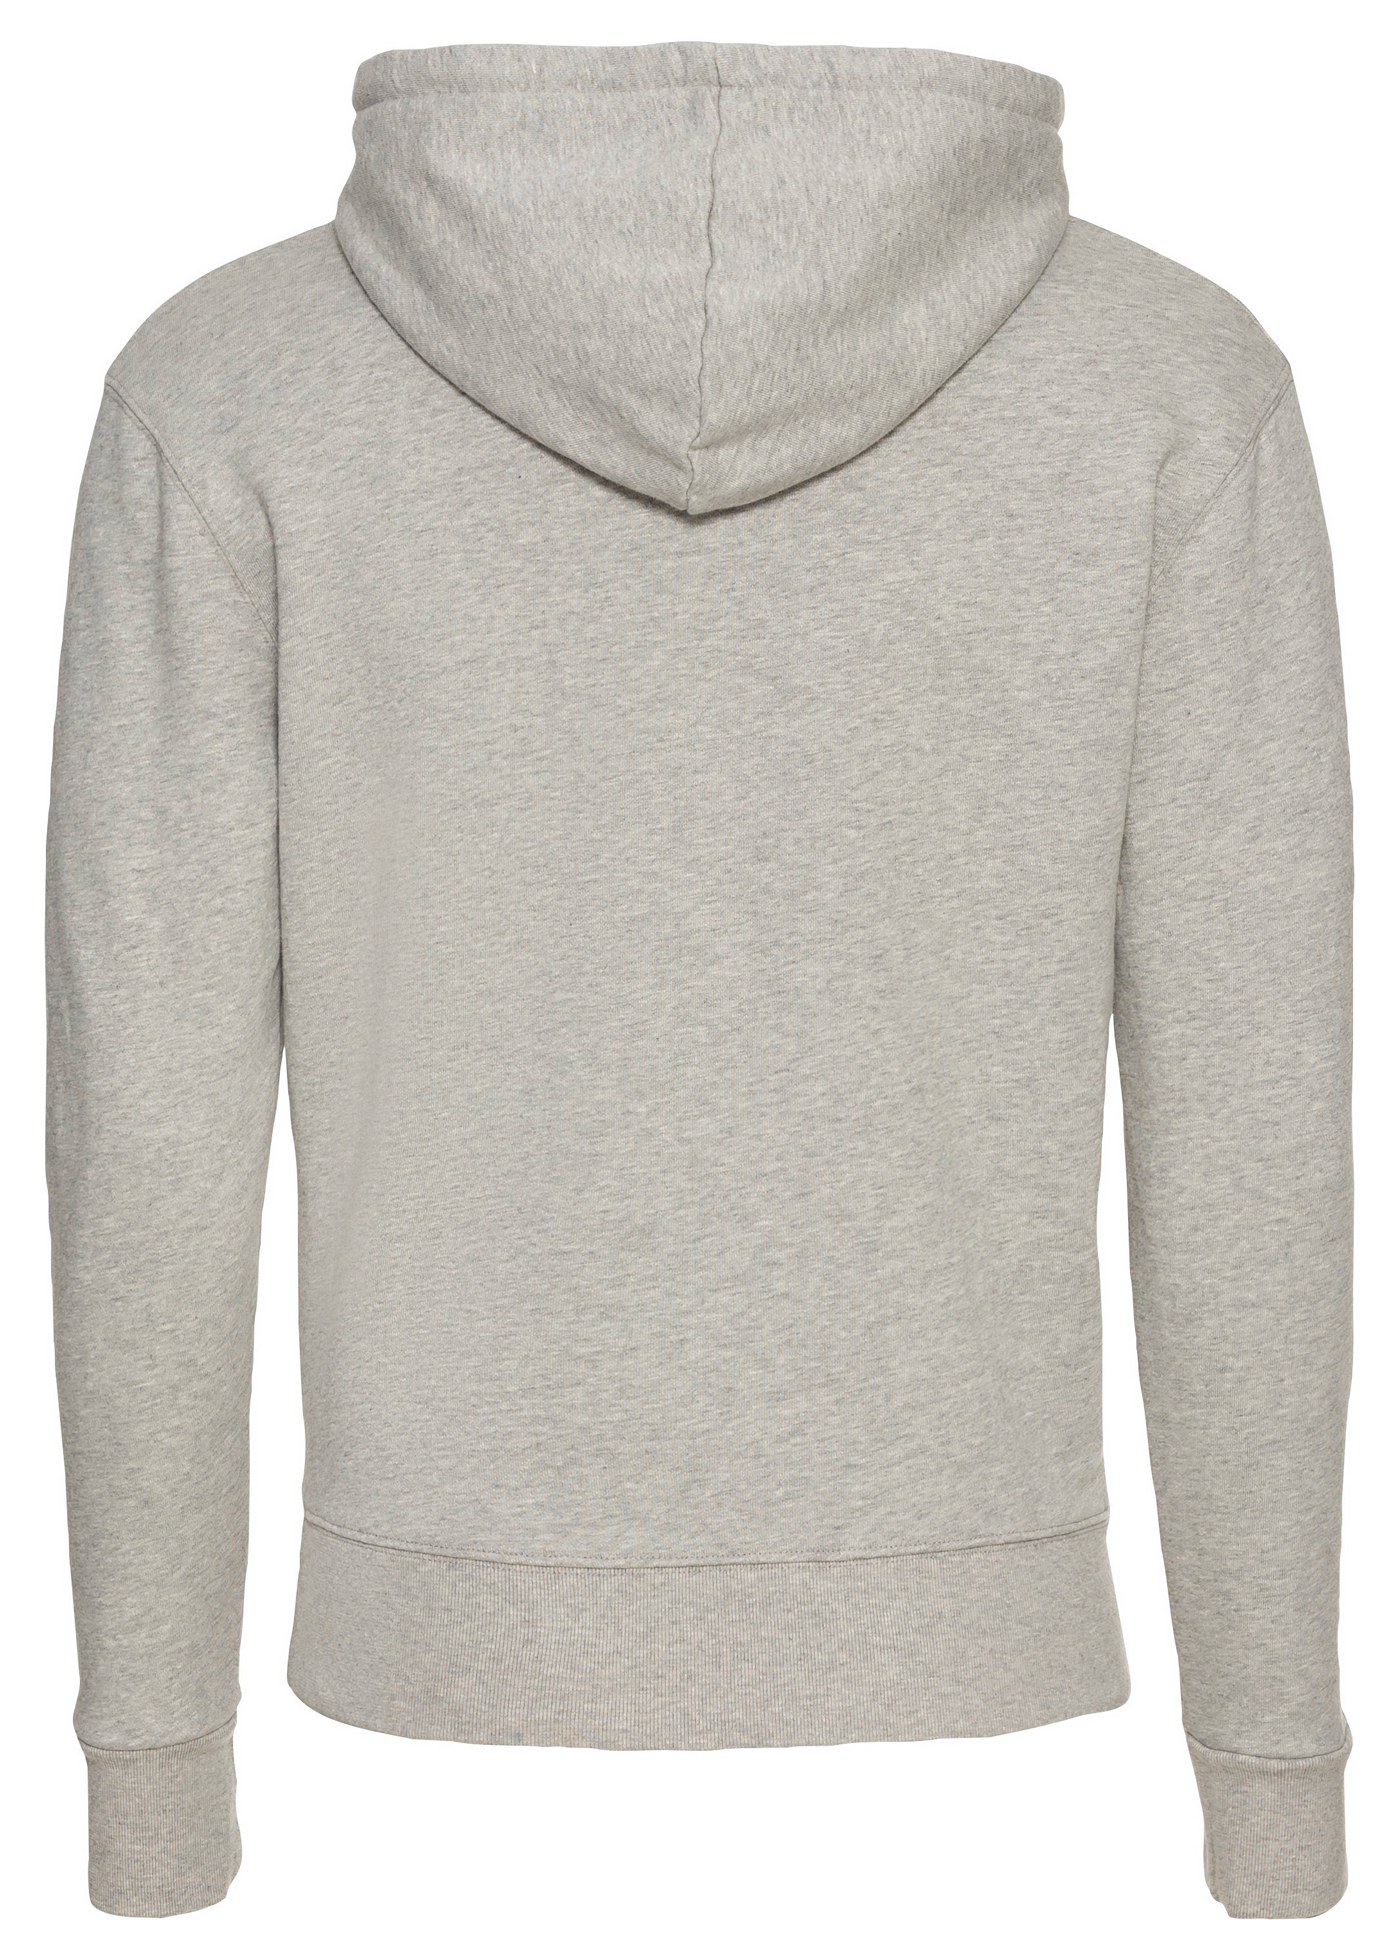 NAVY FOX PATCH CLASSIC HOODIE image number 1